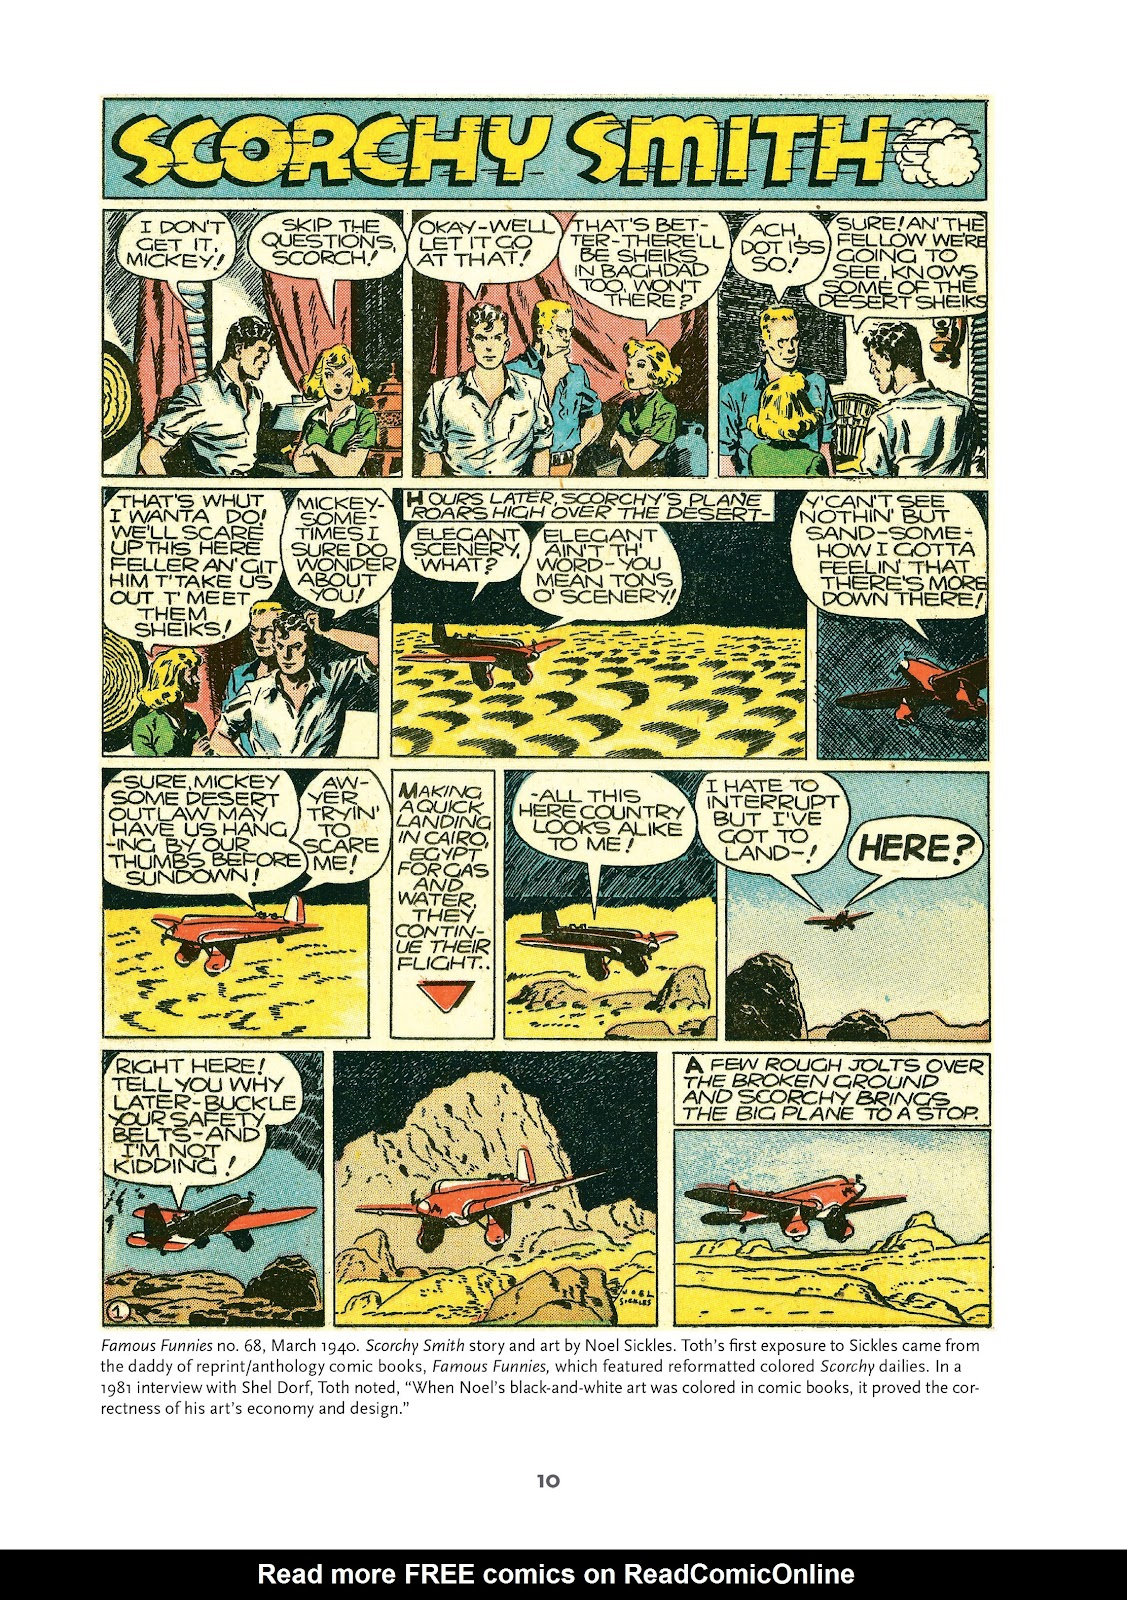 Read online Setting the Standard: Comics by Alex Toth 1952-1954 comic -  Issue # TPB (Part 1) - 9